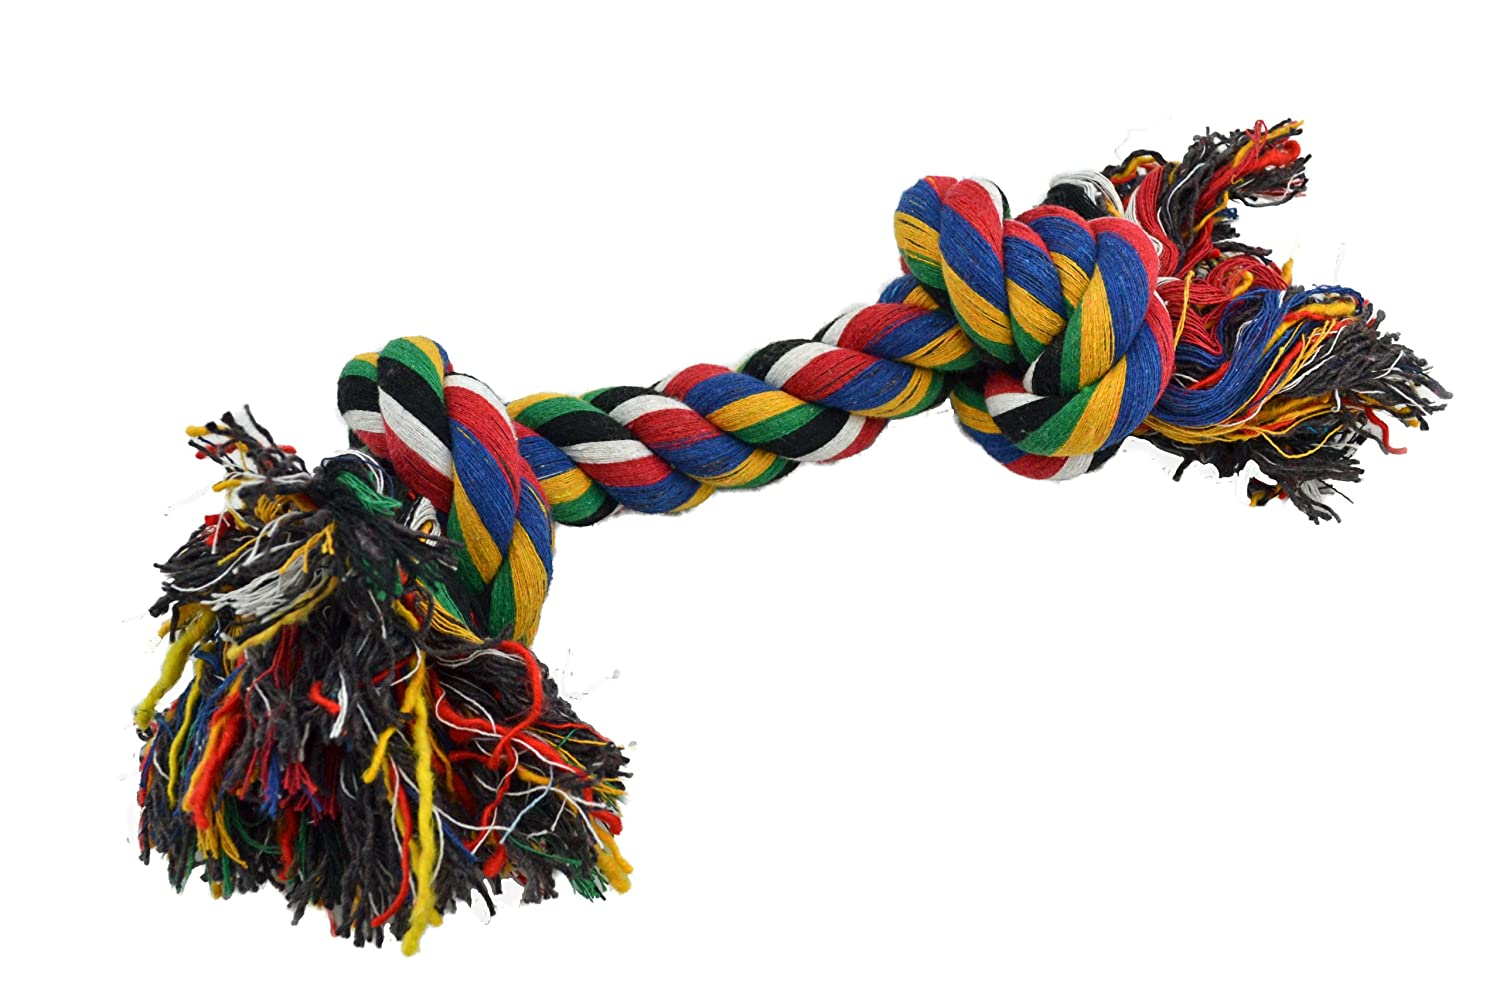 cheap Amazing Pet Products Rope Dog Toy, X-Large, 2 Knot Bones